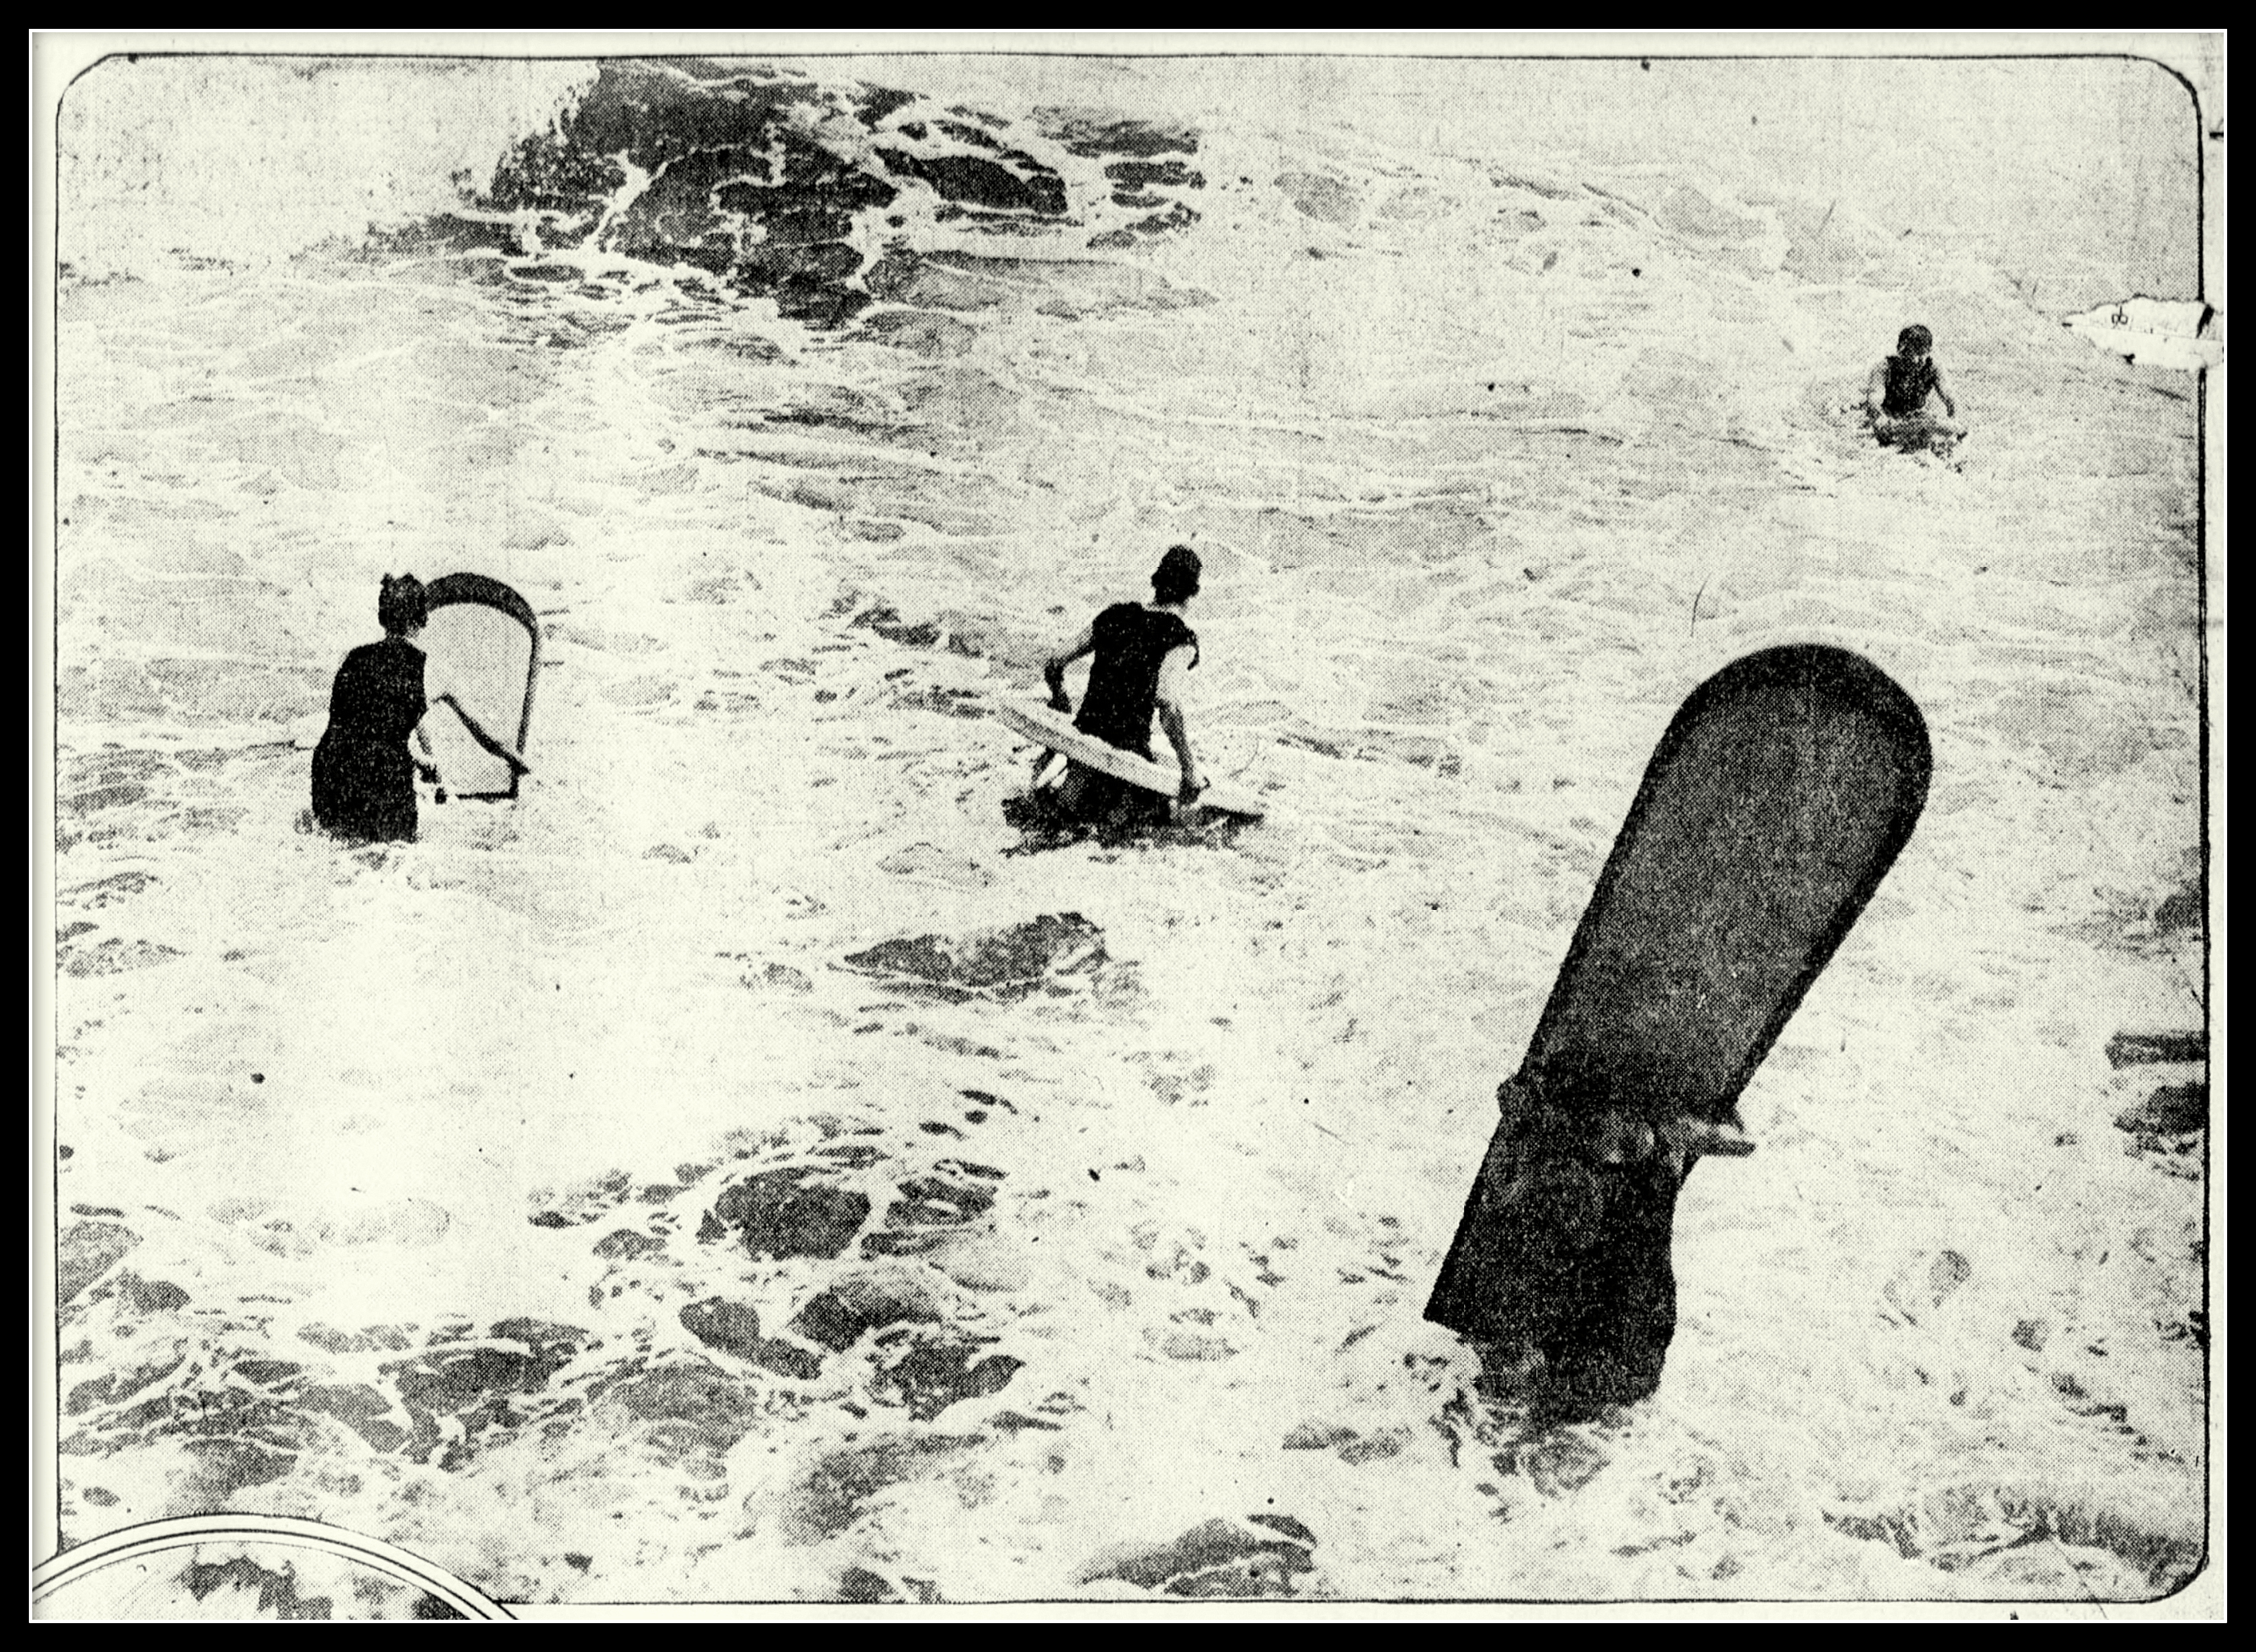 Surfers at The Breakers Hotel, 1919